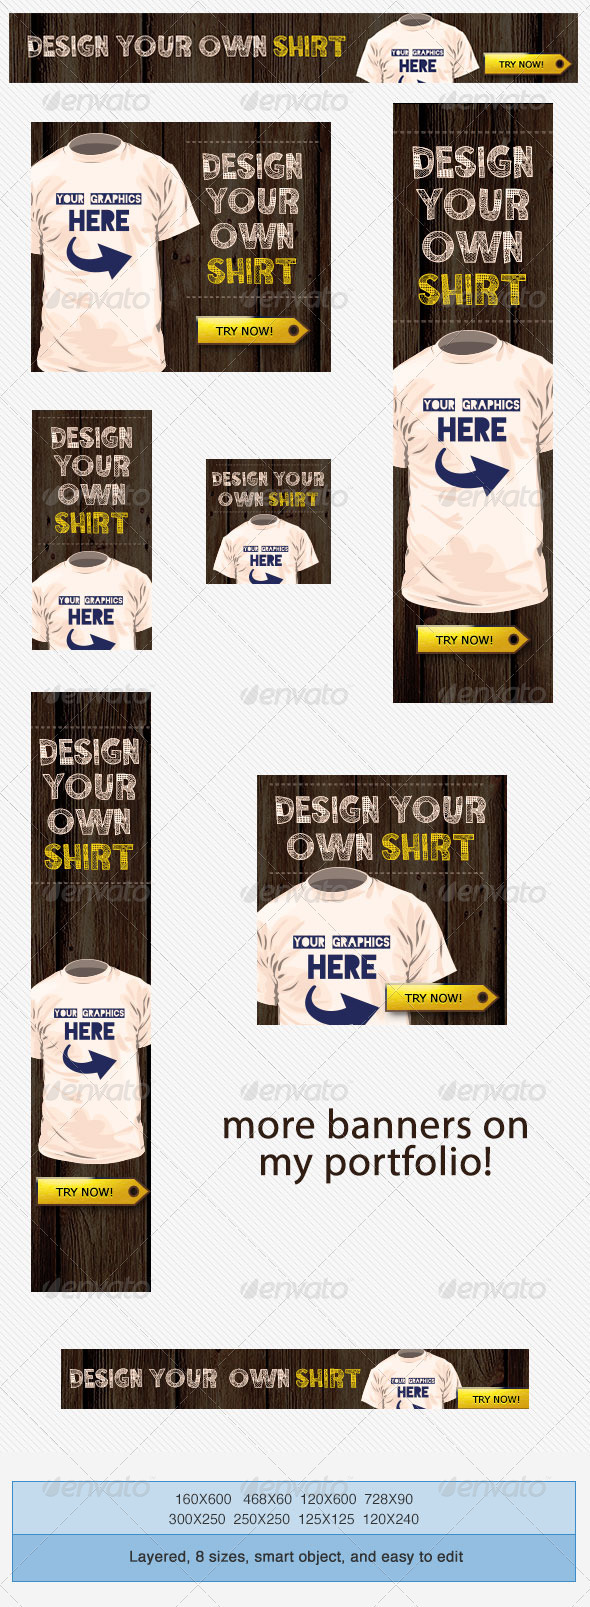 T Shirts Design Banner Ad Template - Banners & Ads Web Elements